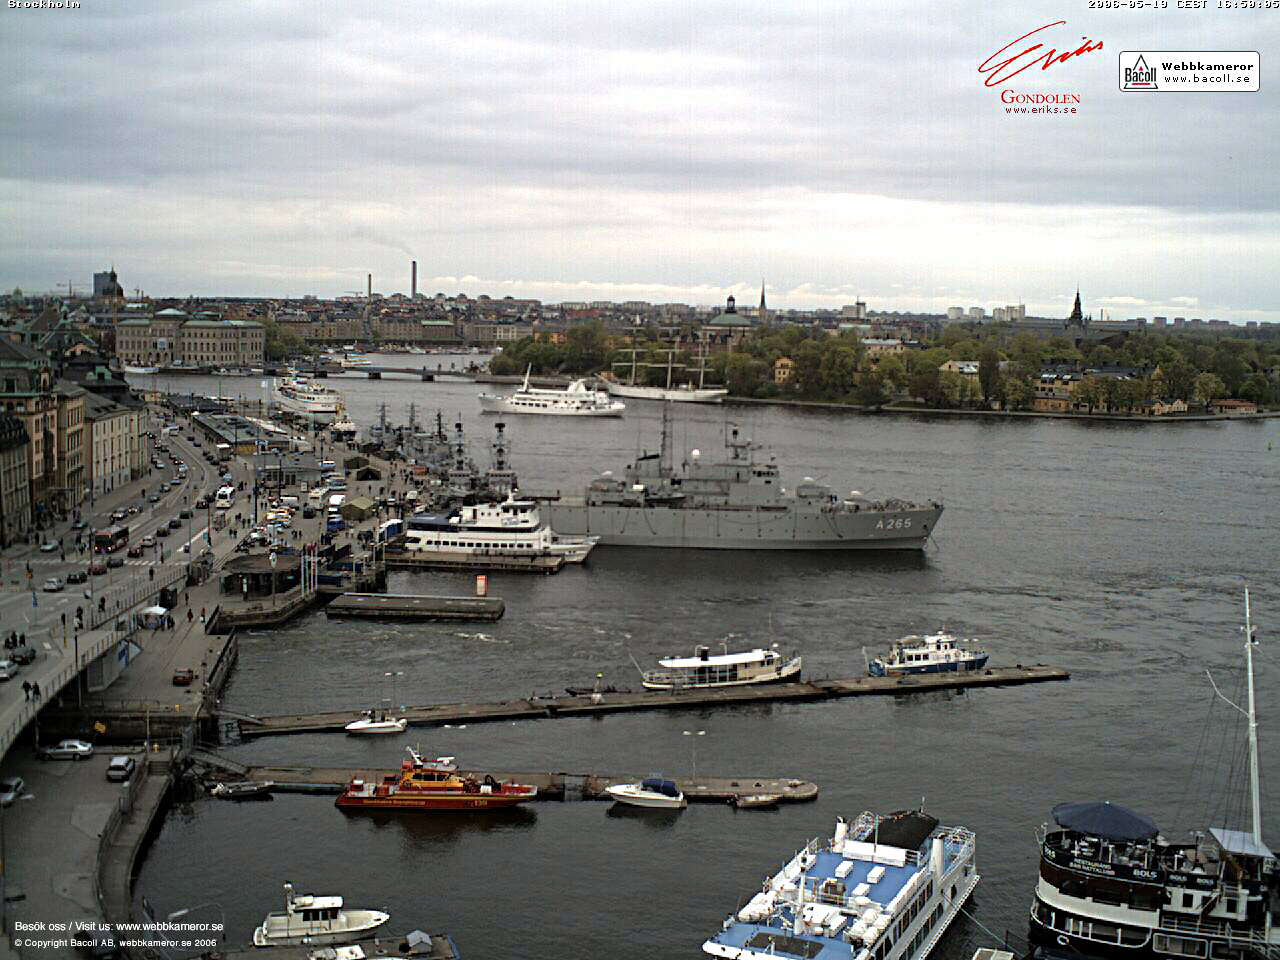 Webkamera, Stockholm, webcam, väder, weather